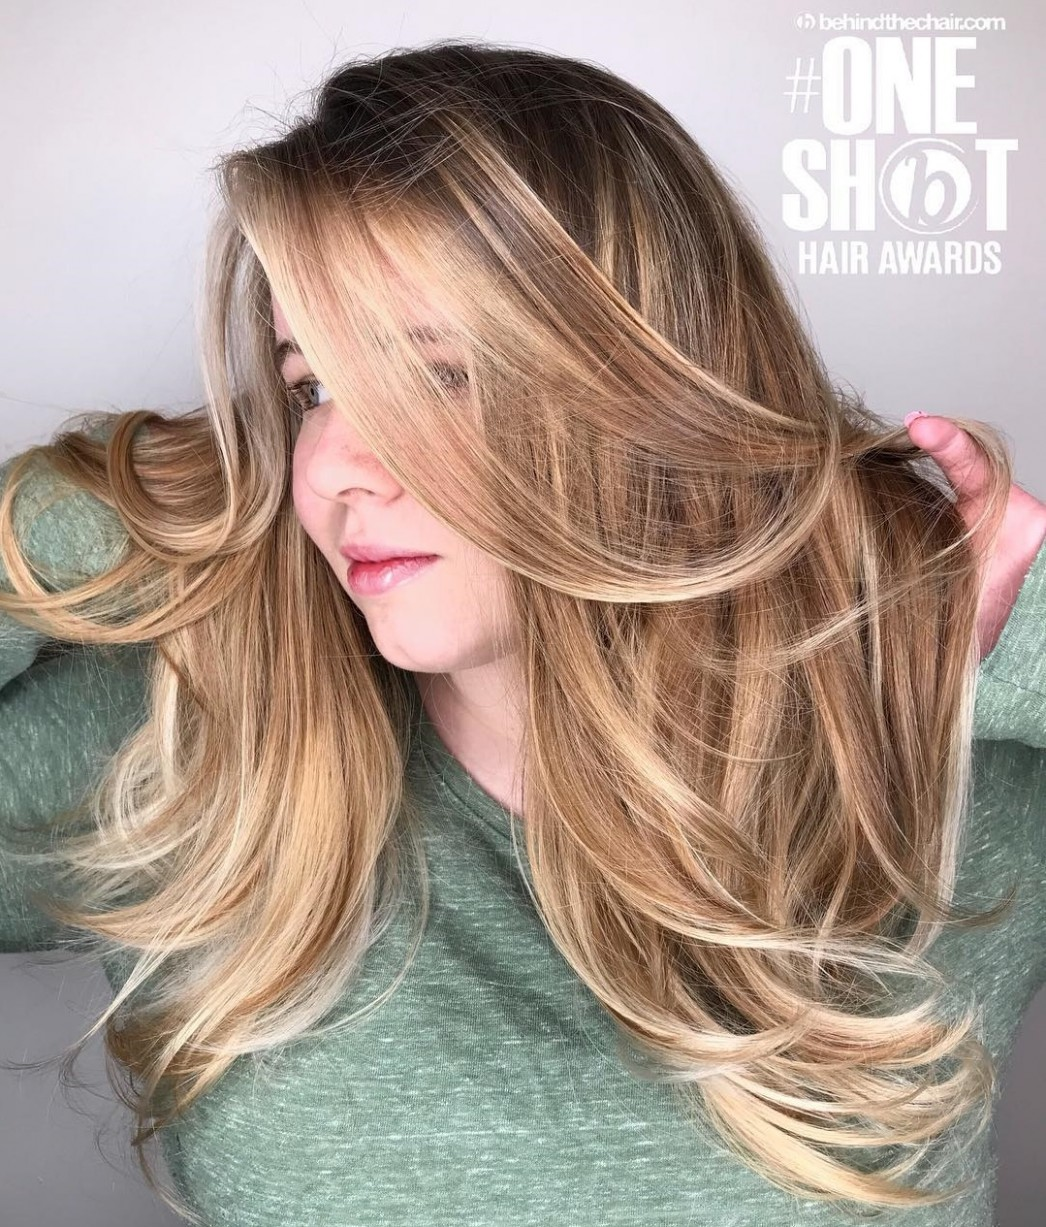 11 Amazing Haircuts For Round Faces Hair Adviser Best Haircut For Round Chubby Face